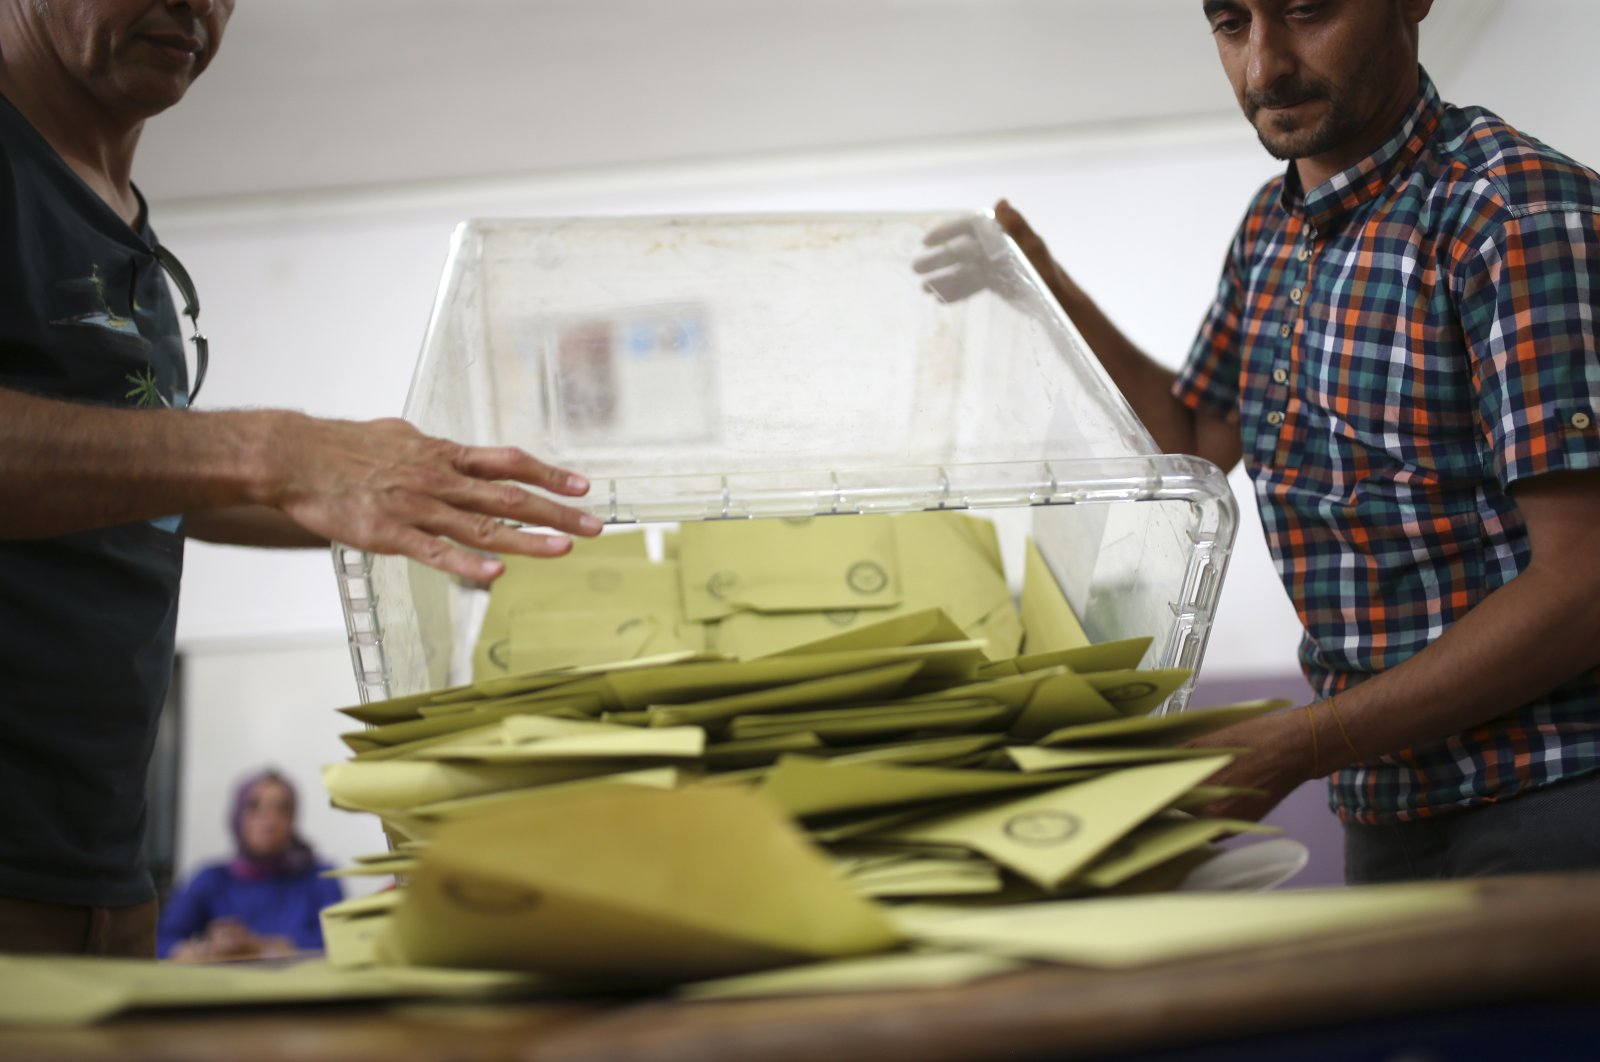 Election officials open a ballot box at a polling station in Diyarbakır province, southeastern Turkey, June 24, 2018. (AP File Photo)